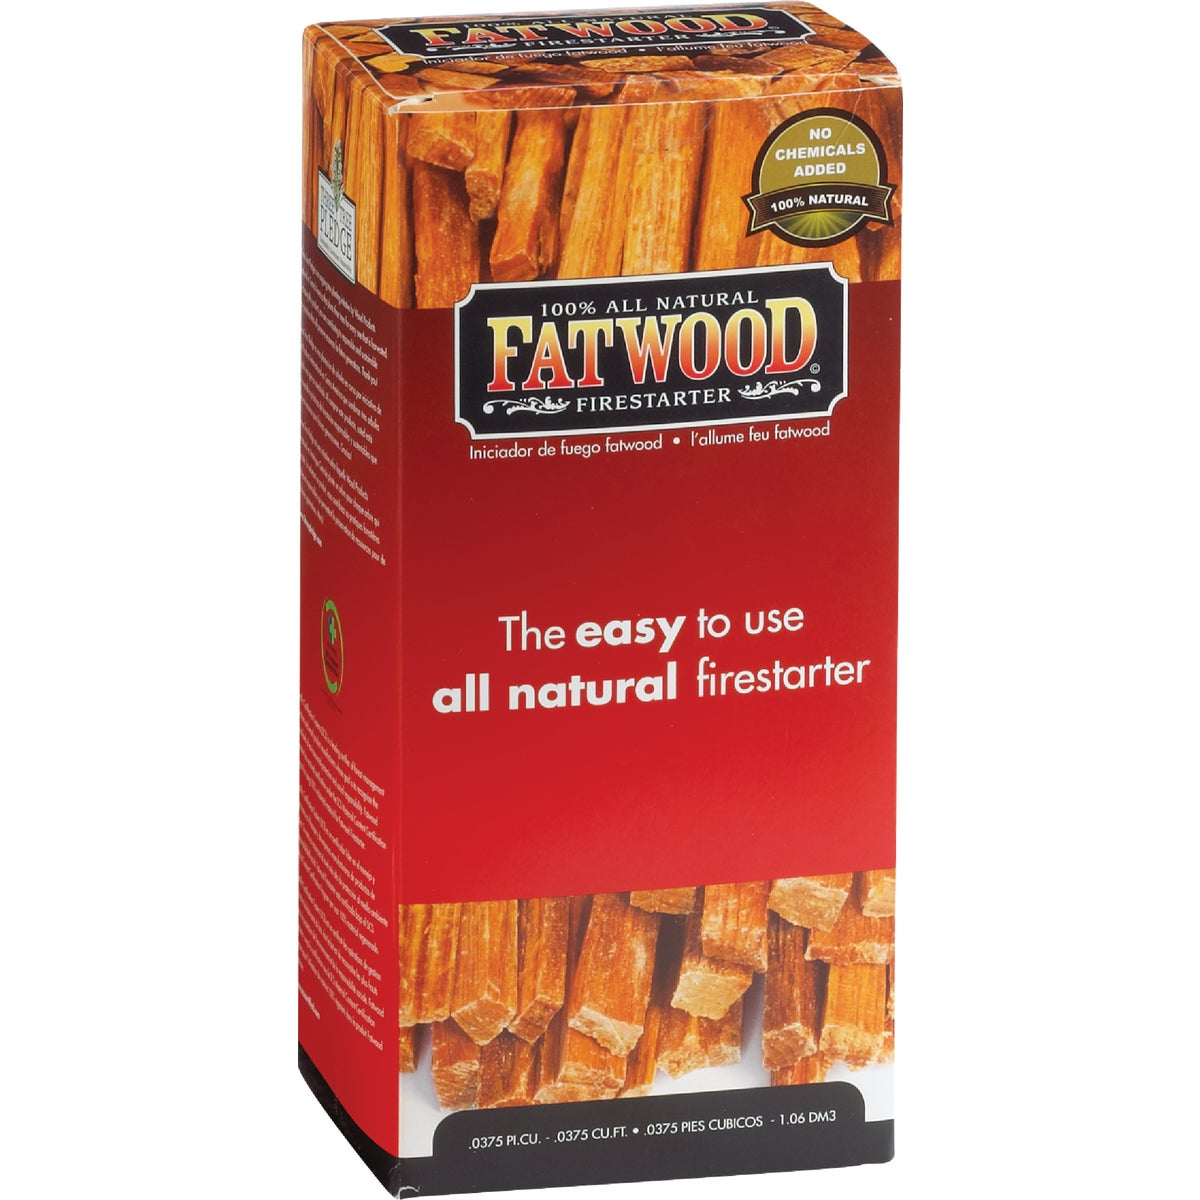 1.5LB FATWOD FIRESTARTER - 9983 by Wood Products Intl